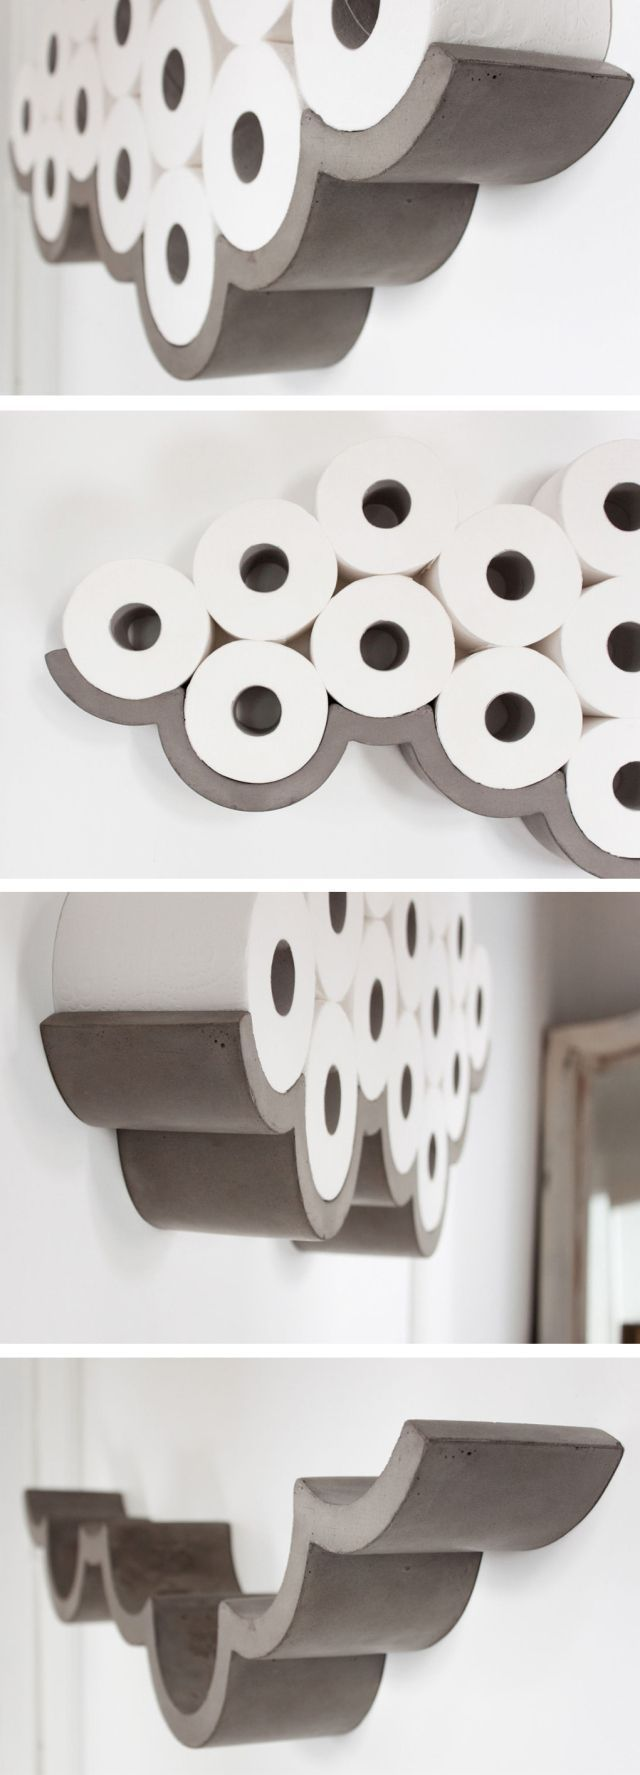 Awesome Products: Cloud concrete toilet roll holder